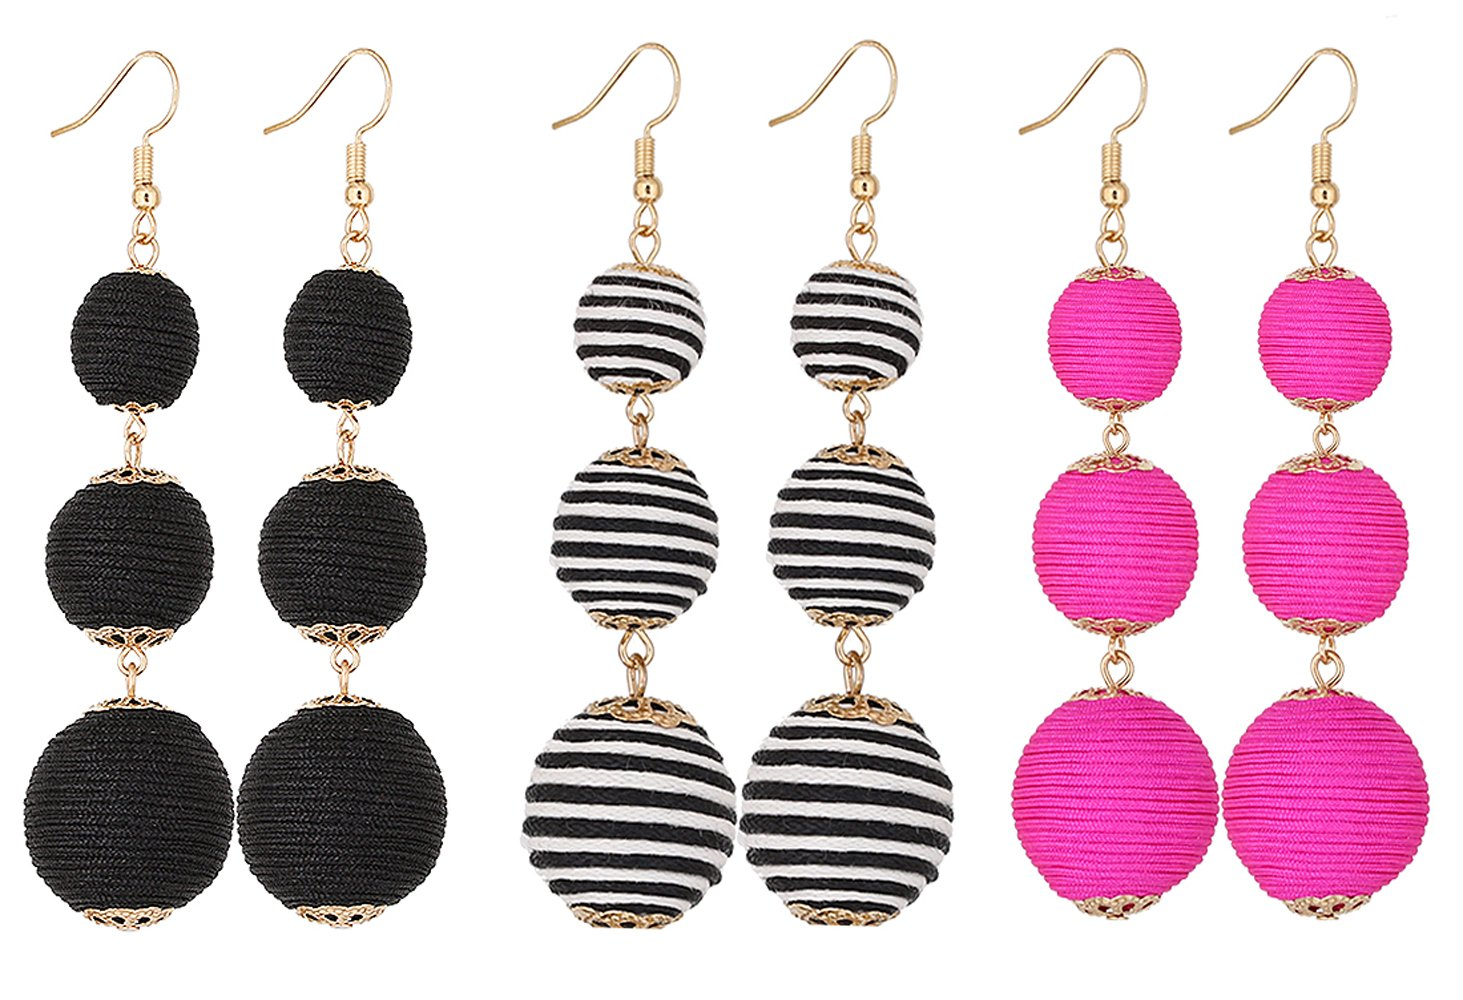 VK Accessories Thread Ball Dangle Earrings Thread Dangle Earrings Soriee Drop Earrings (3 pairs 02)